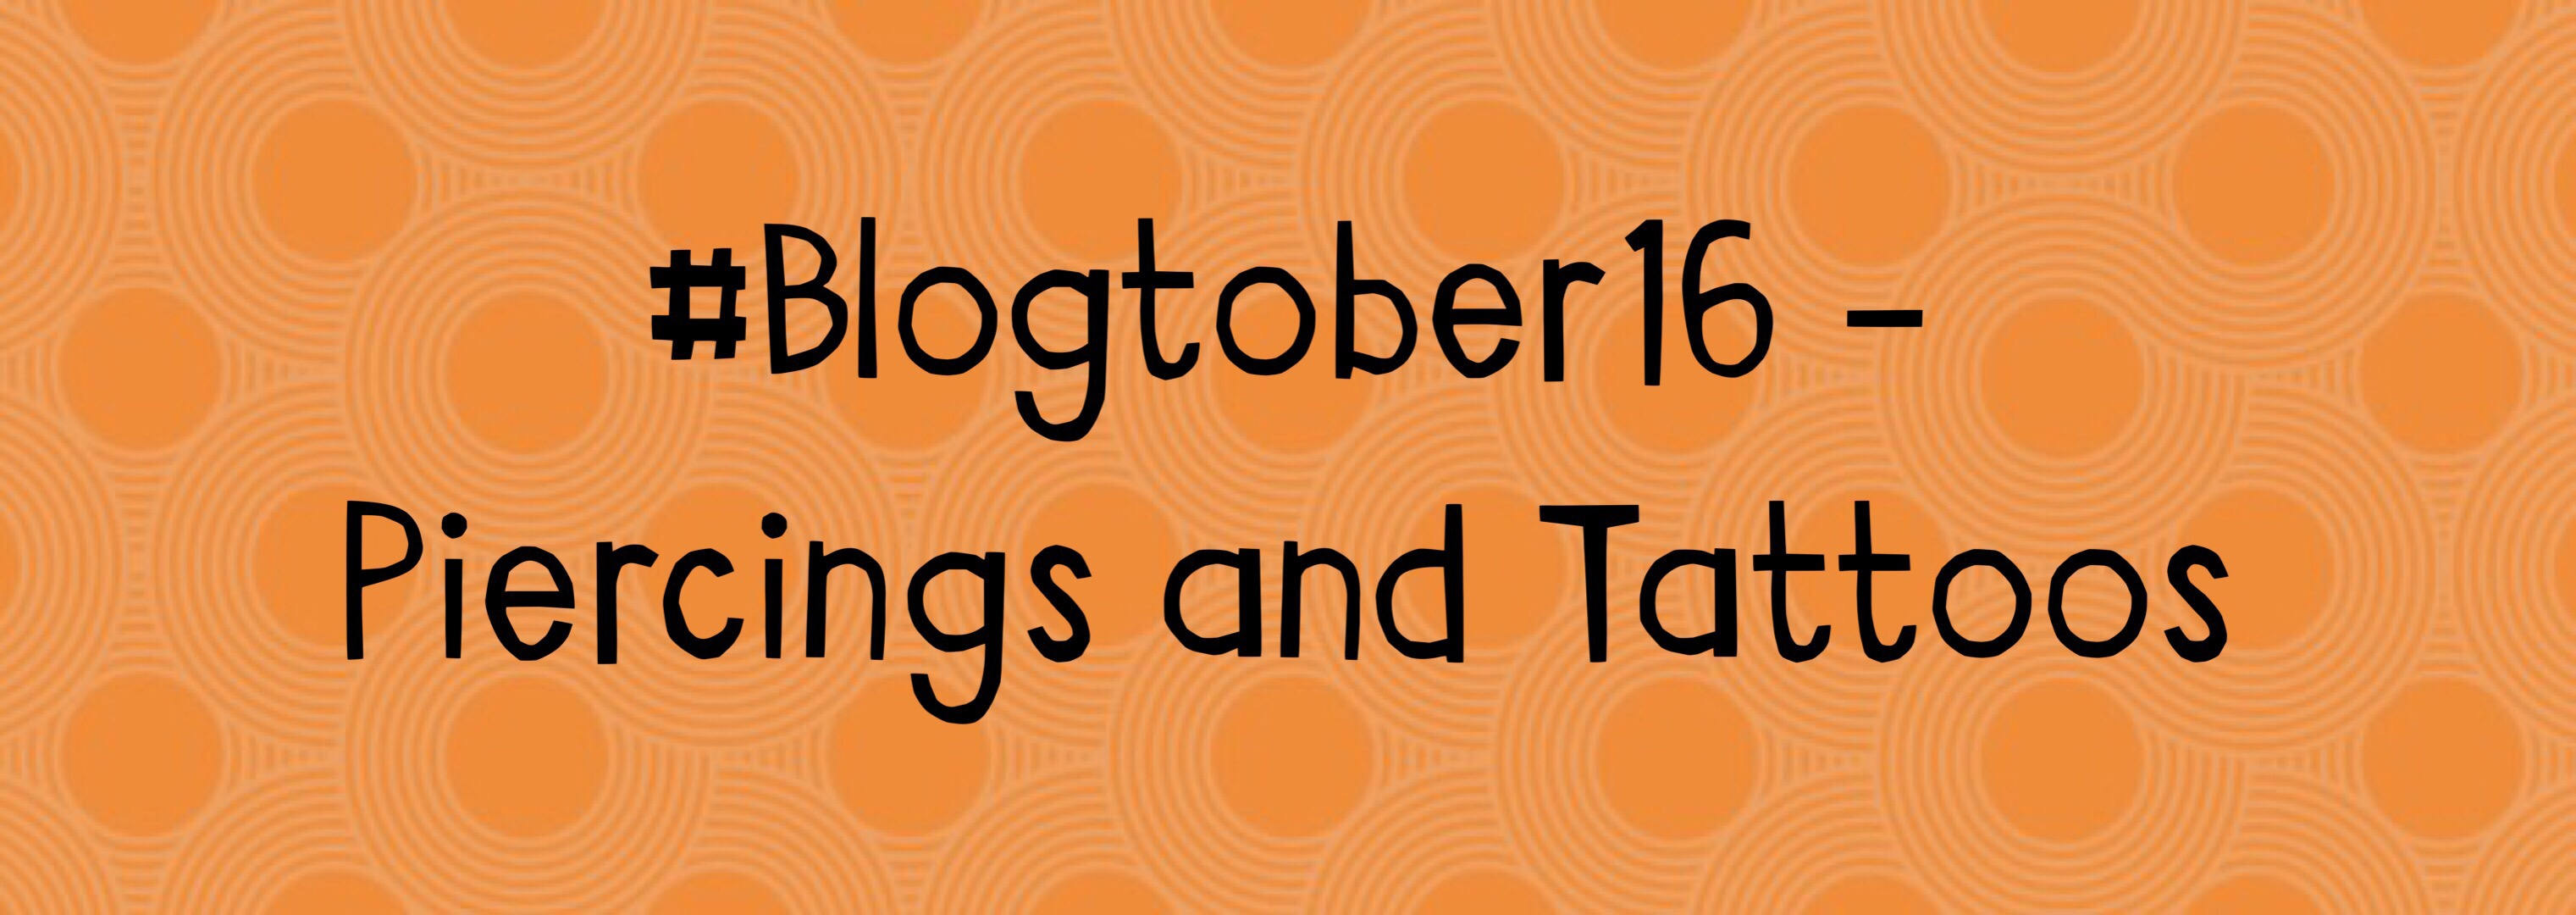 Piercings and Tattoos – #Blogtober16 Day 16